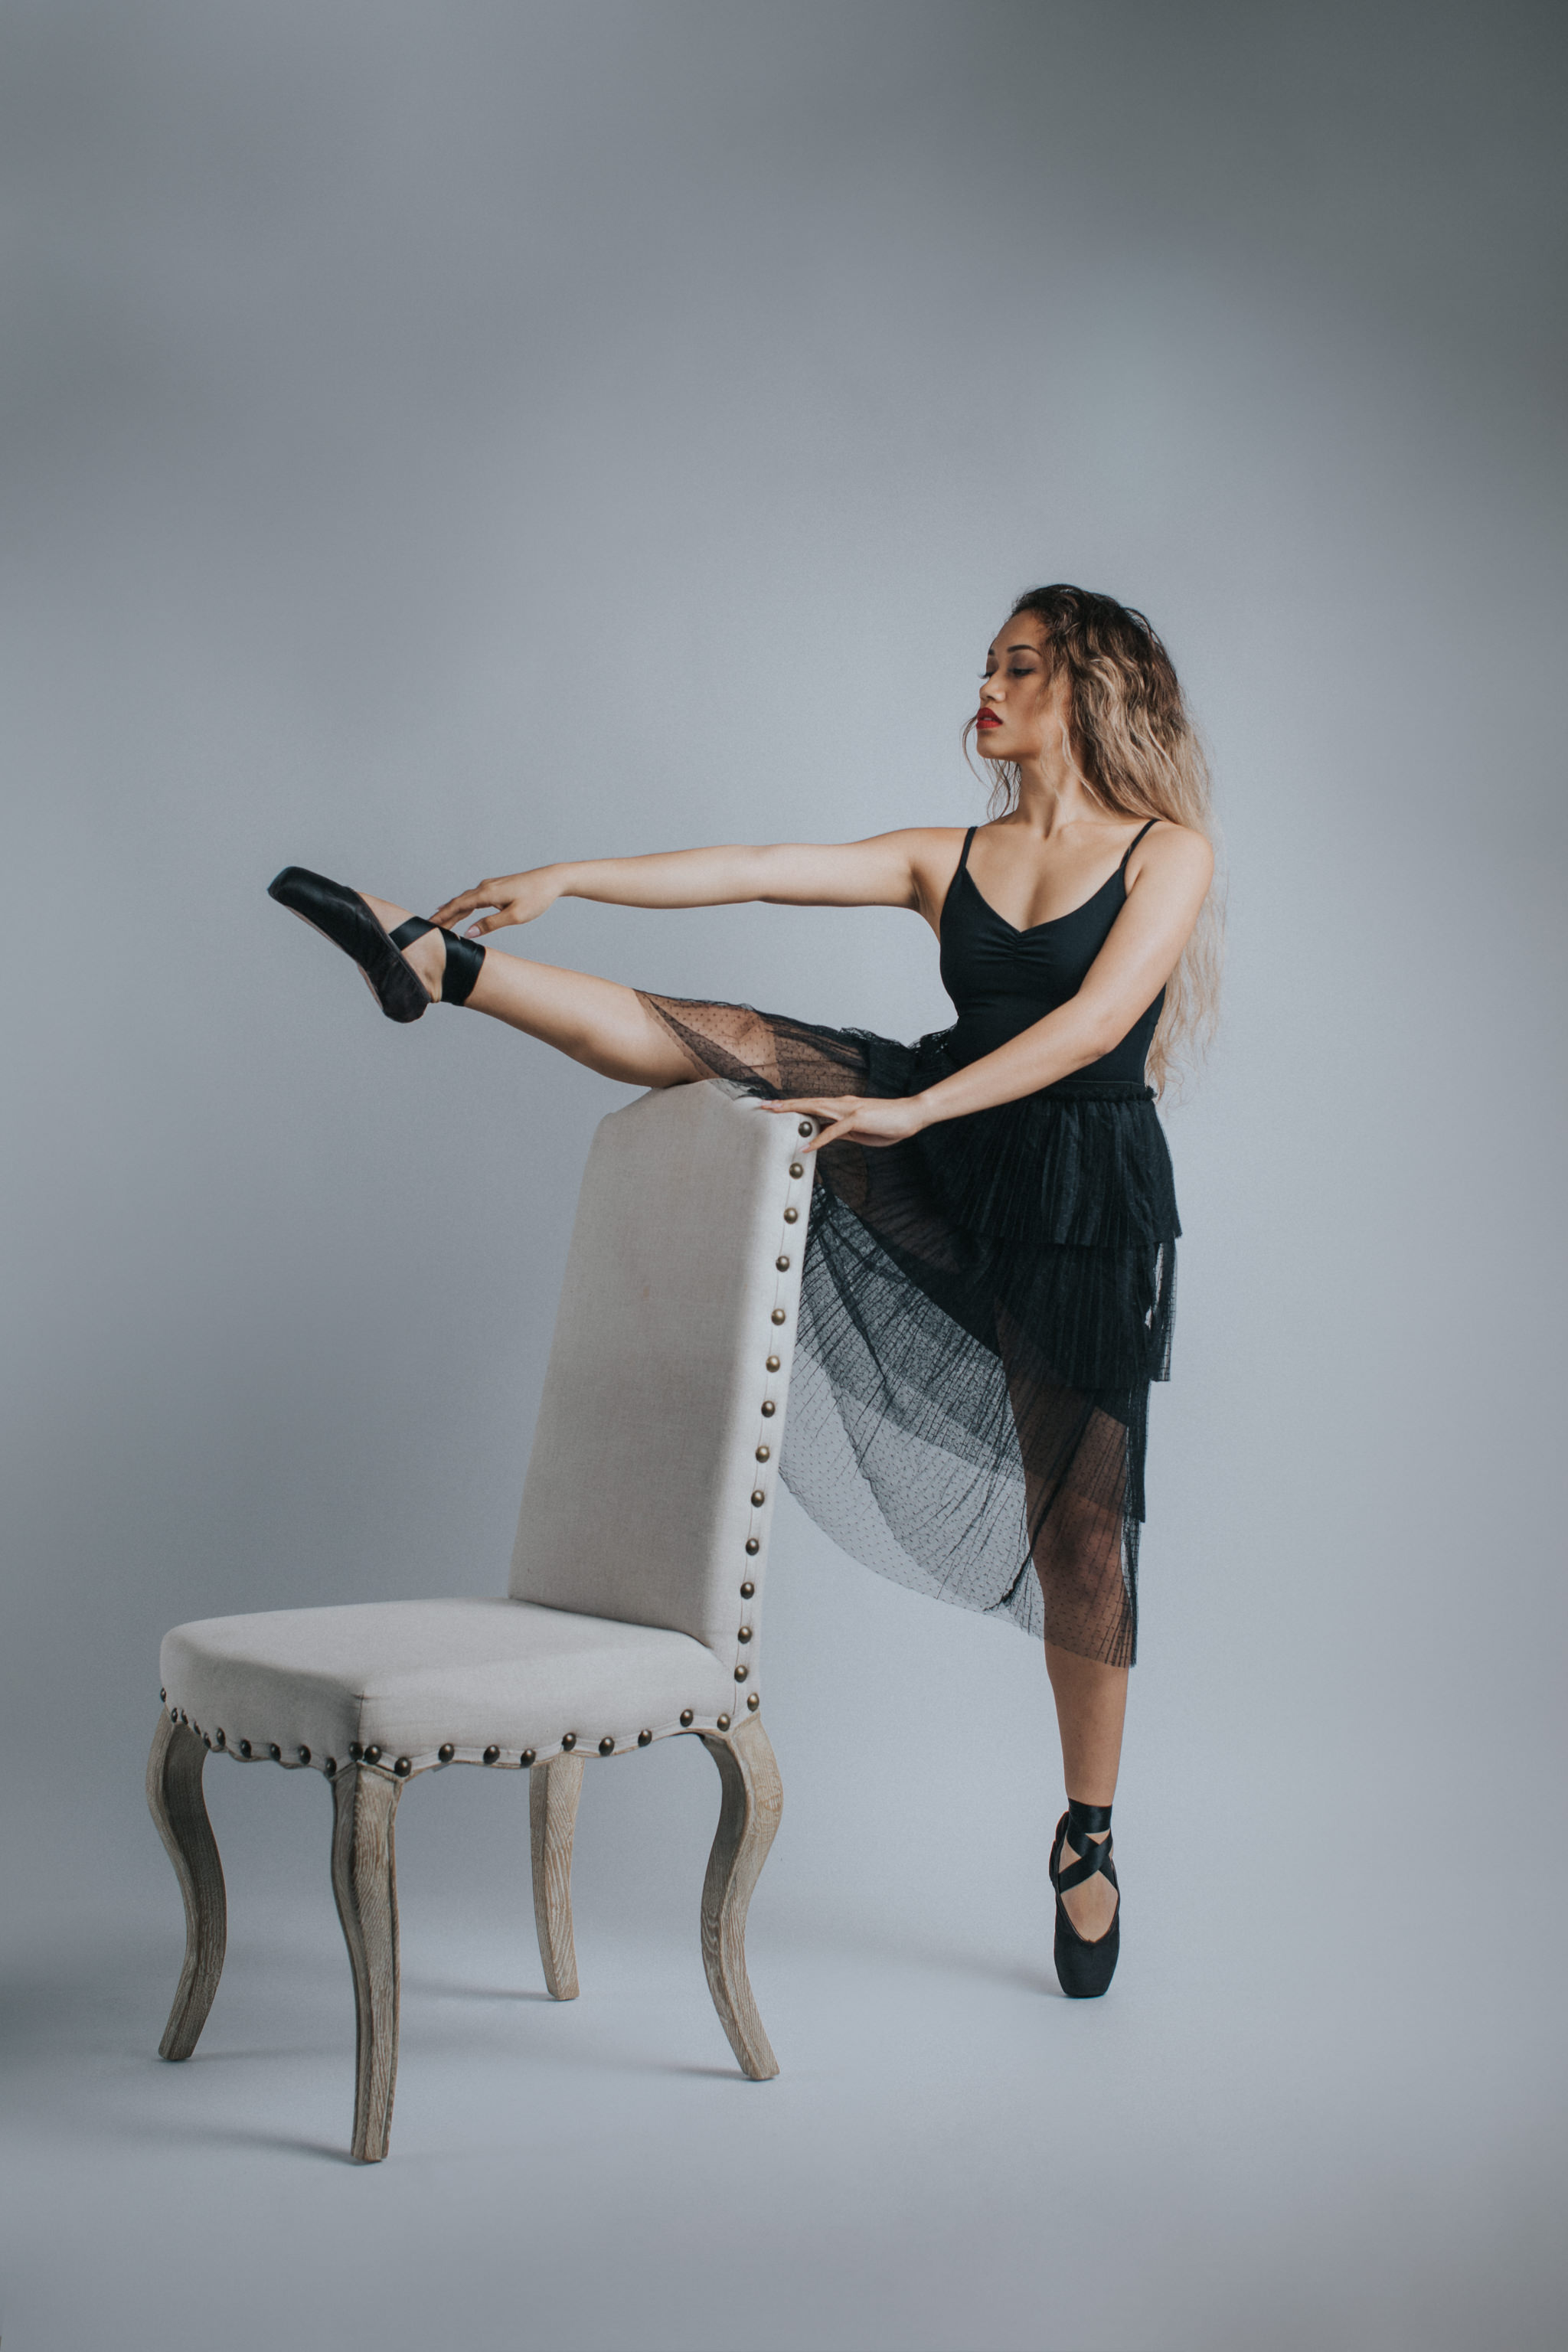 high end dance photography in melbourne - multicultural